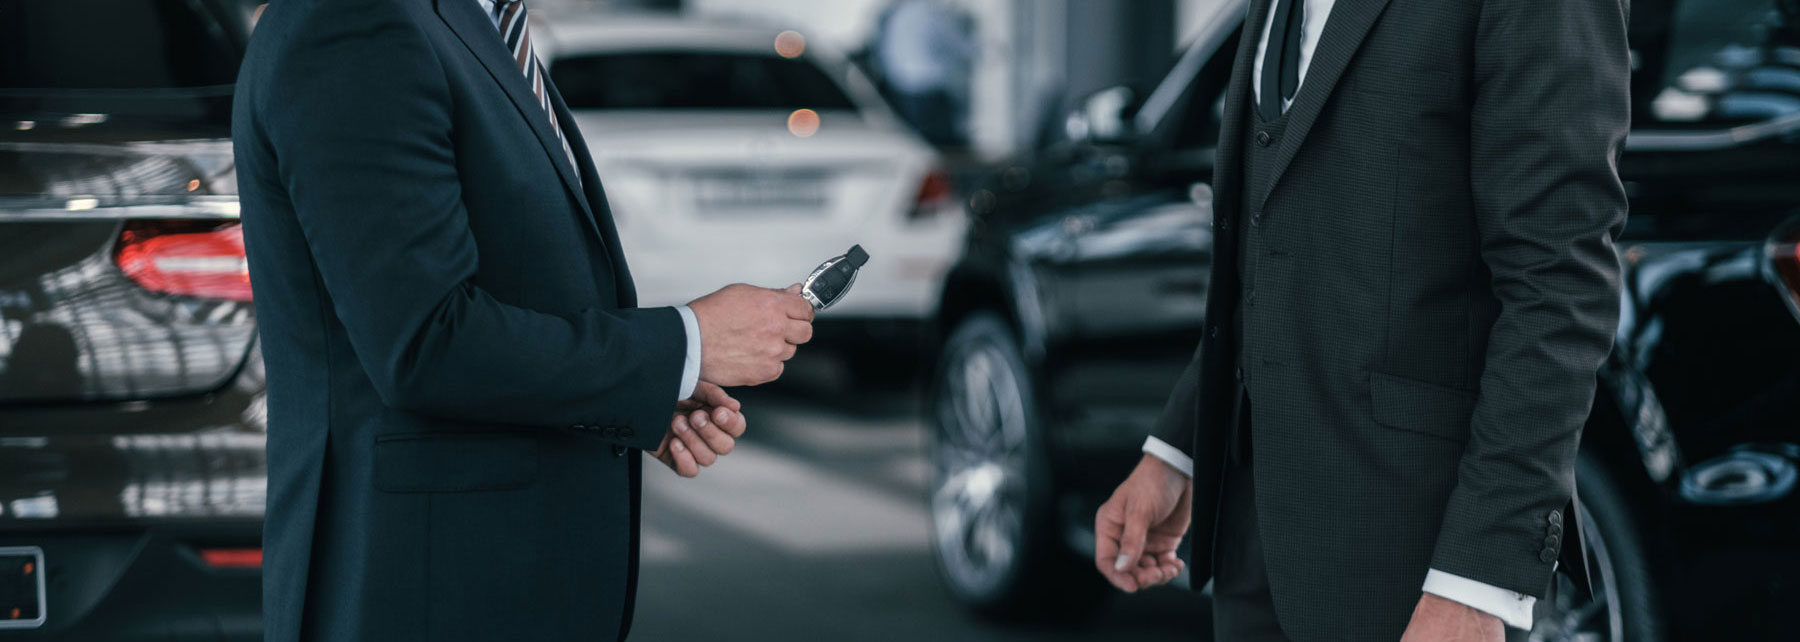 Driving Business, private driving, business driving, taxidienst, pendeldienst, taxi service, car rent, wagenverhuur